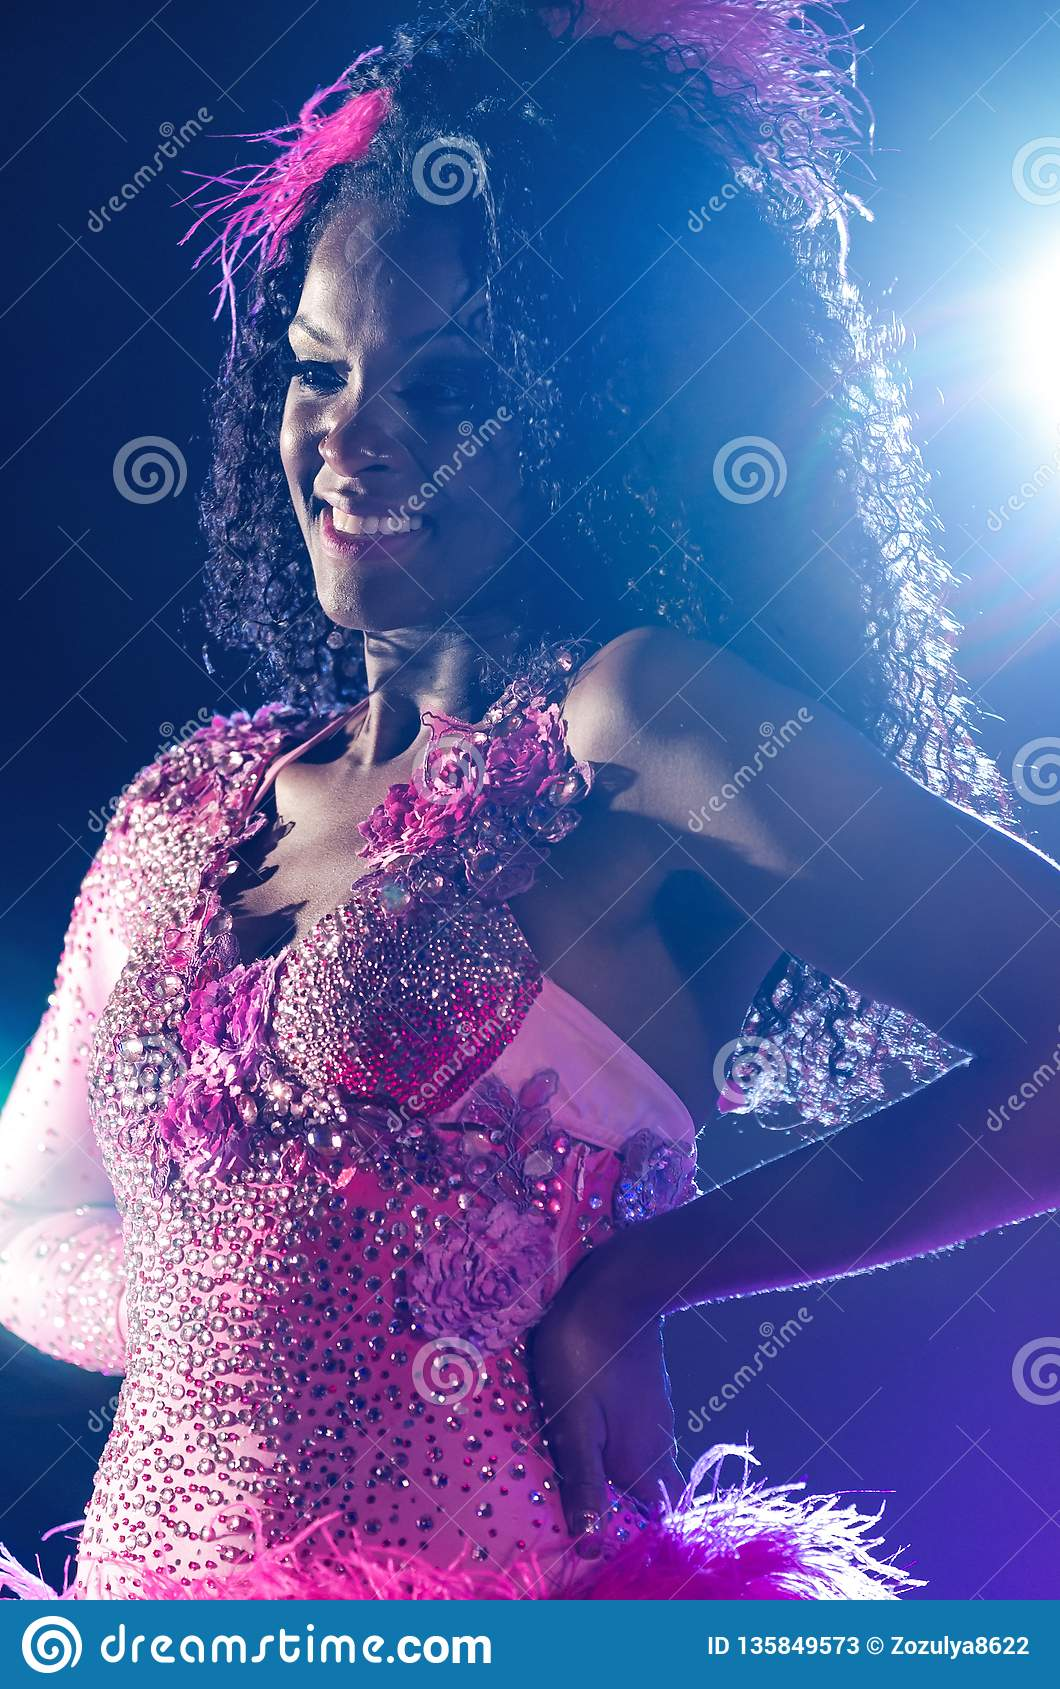 MOSCOW, RUSSIA- MAY 2017: Photo event with Beautiful girl bright carnival costume stage background. Portrait smiling